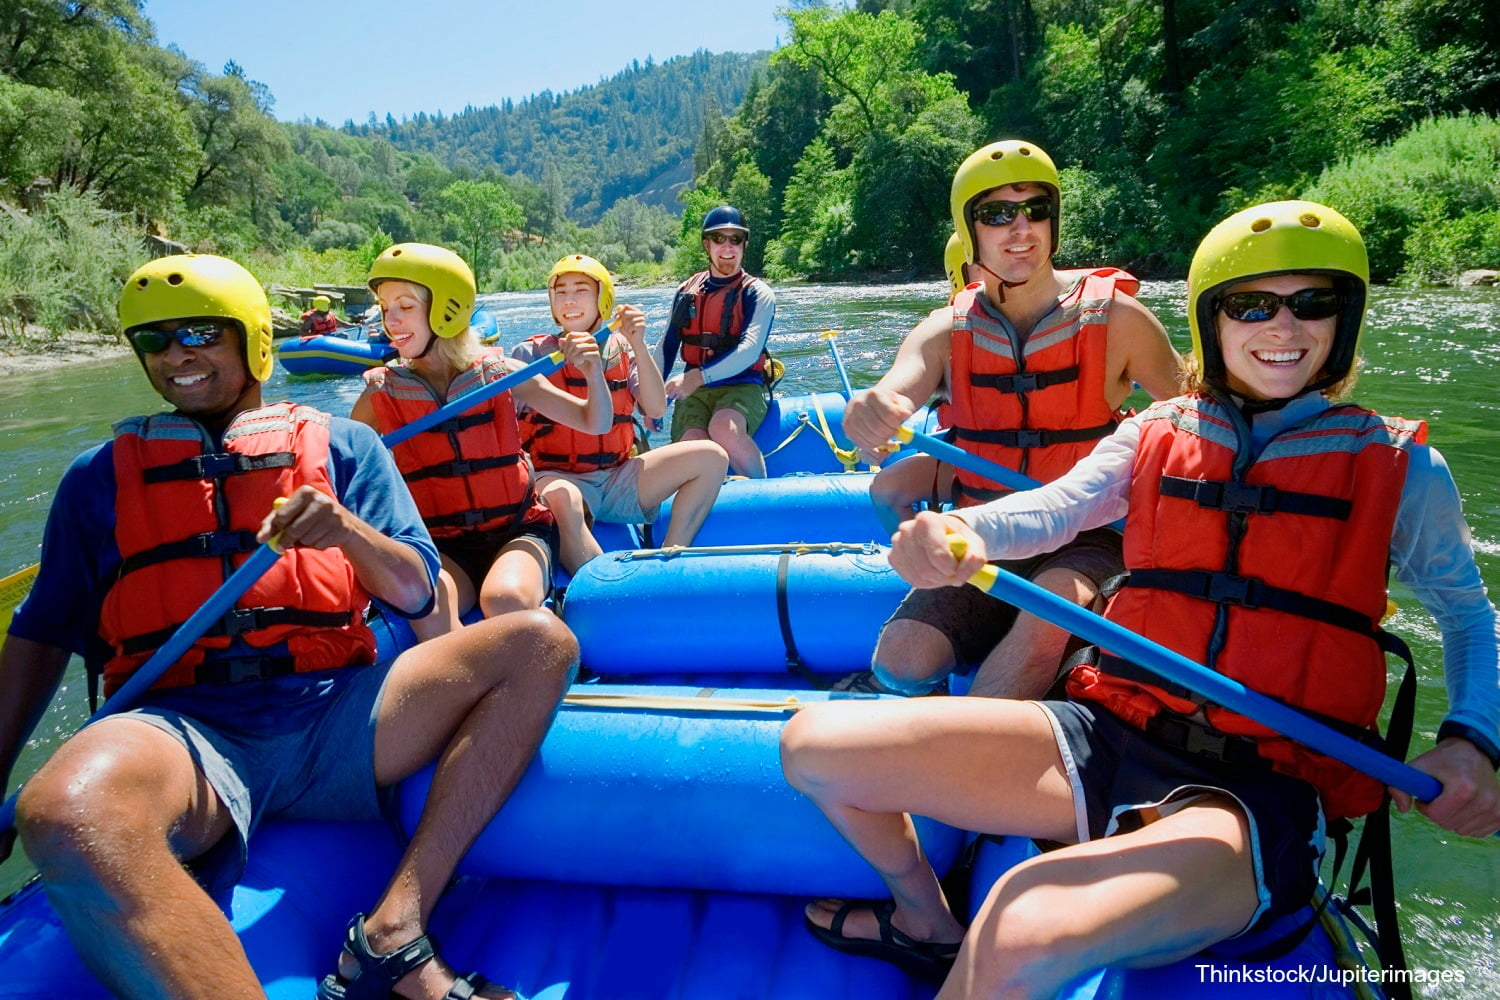 Have The Best Day At Kittatinny White Water Rafting